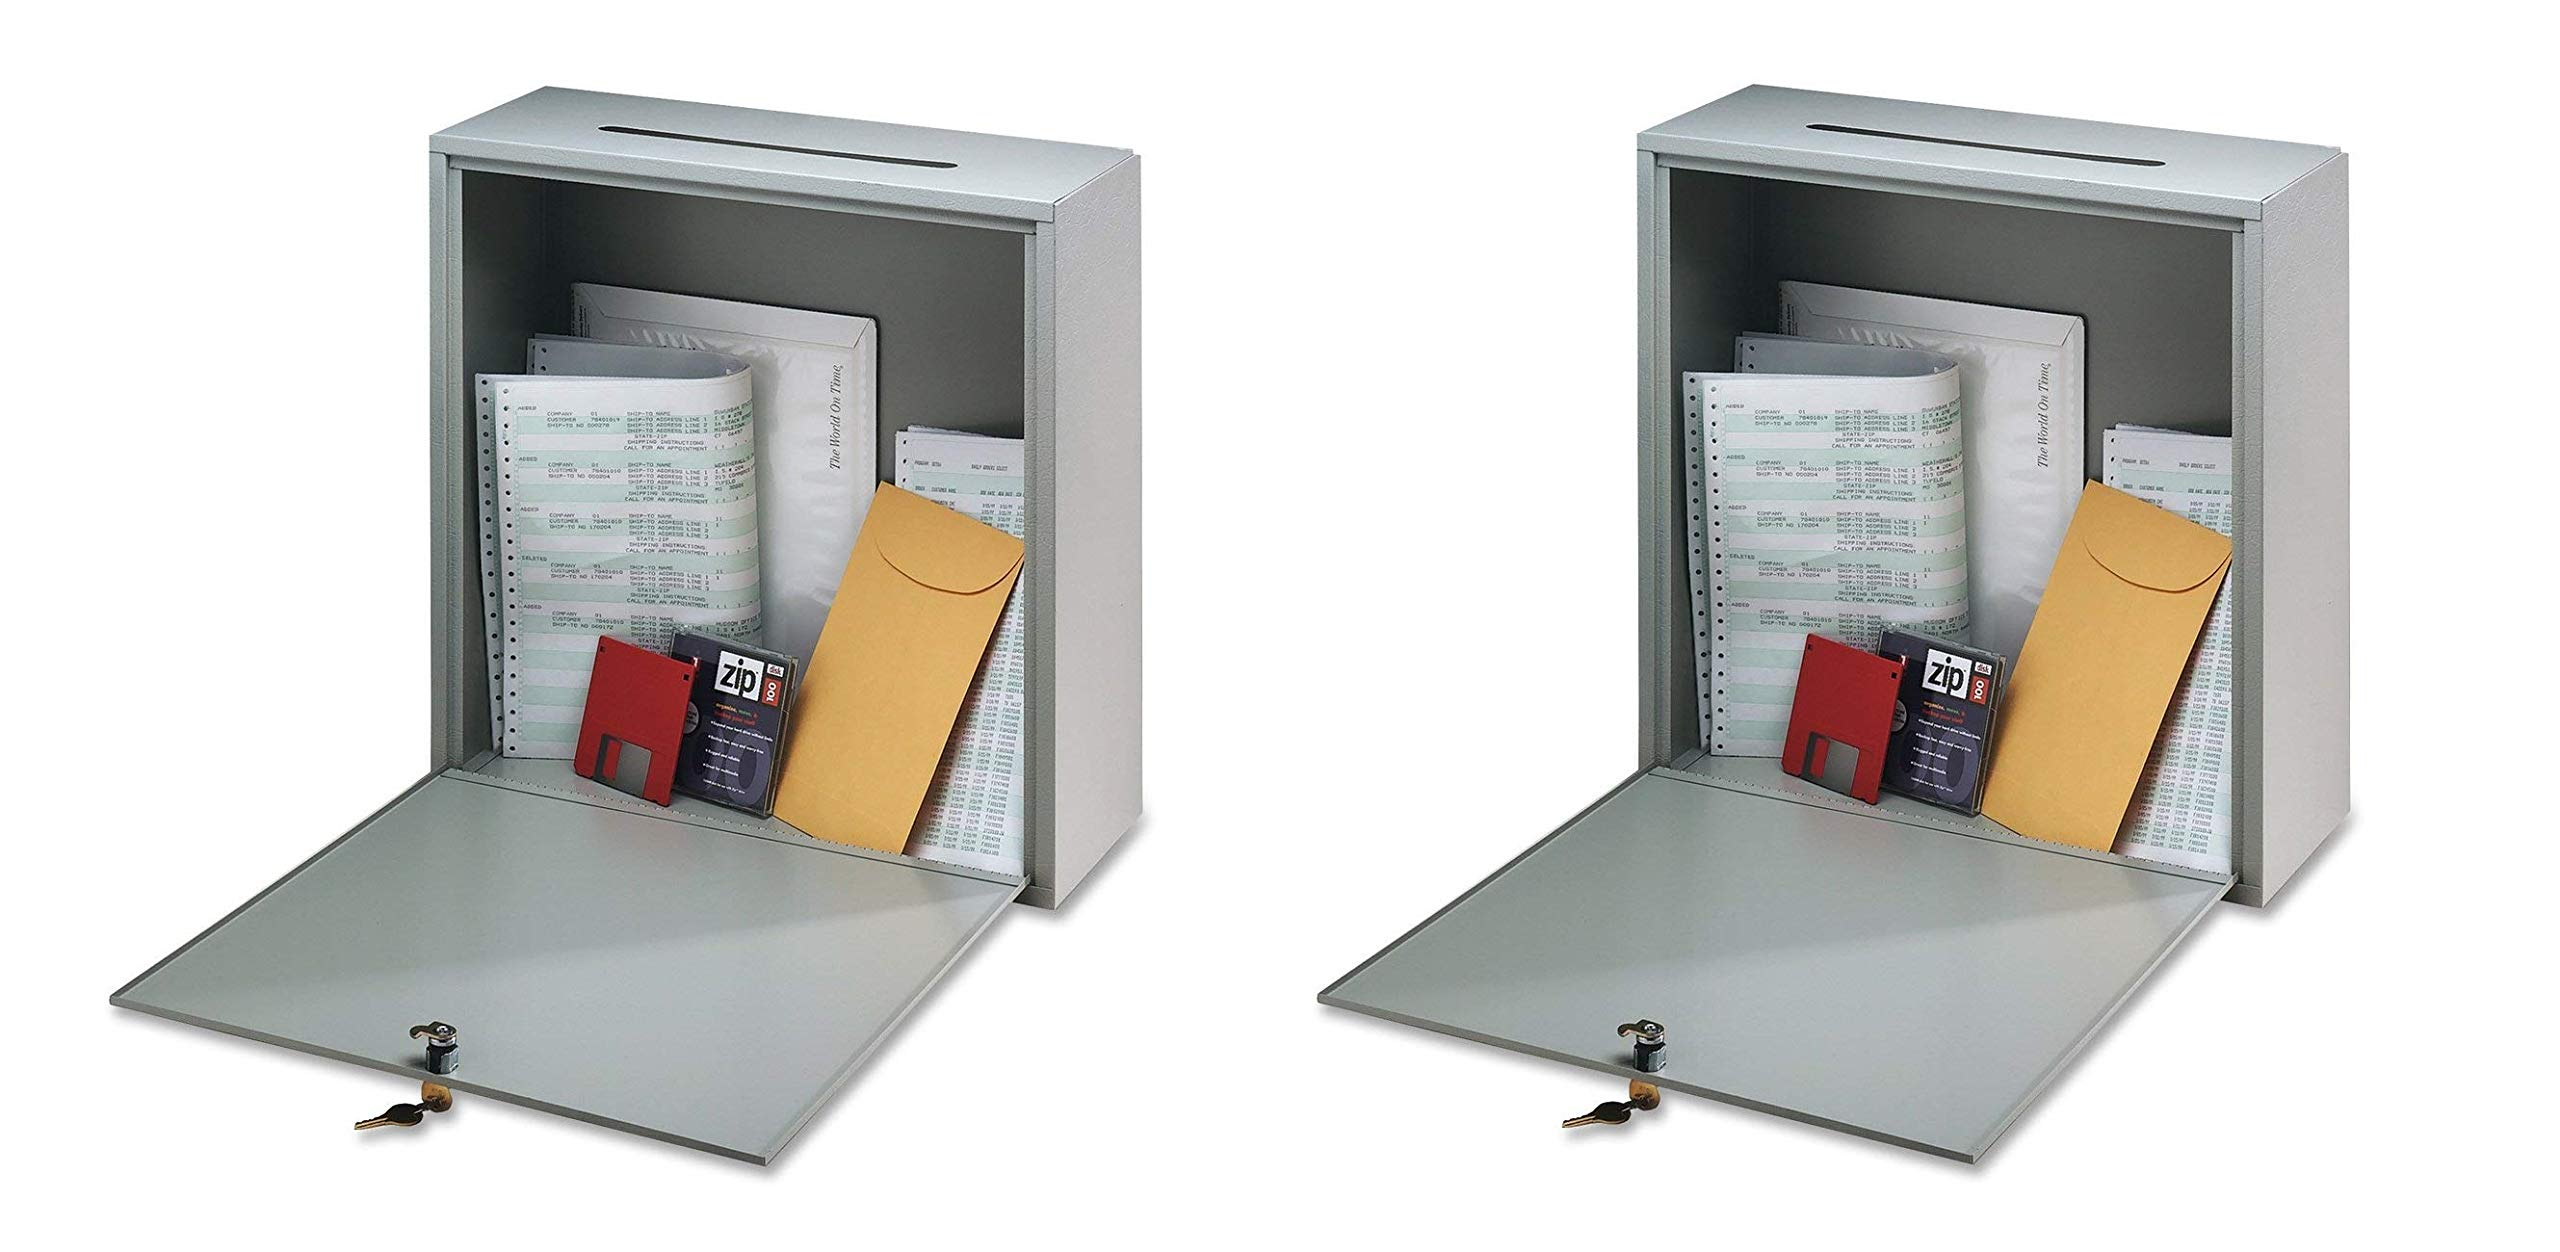 Buddy Products Inter-Office Mailbox, Steel, Small, 3 x 10 x 12 inches, Platinum (5625-32) (Pack of 2)